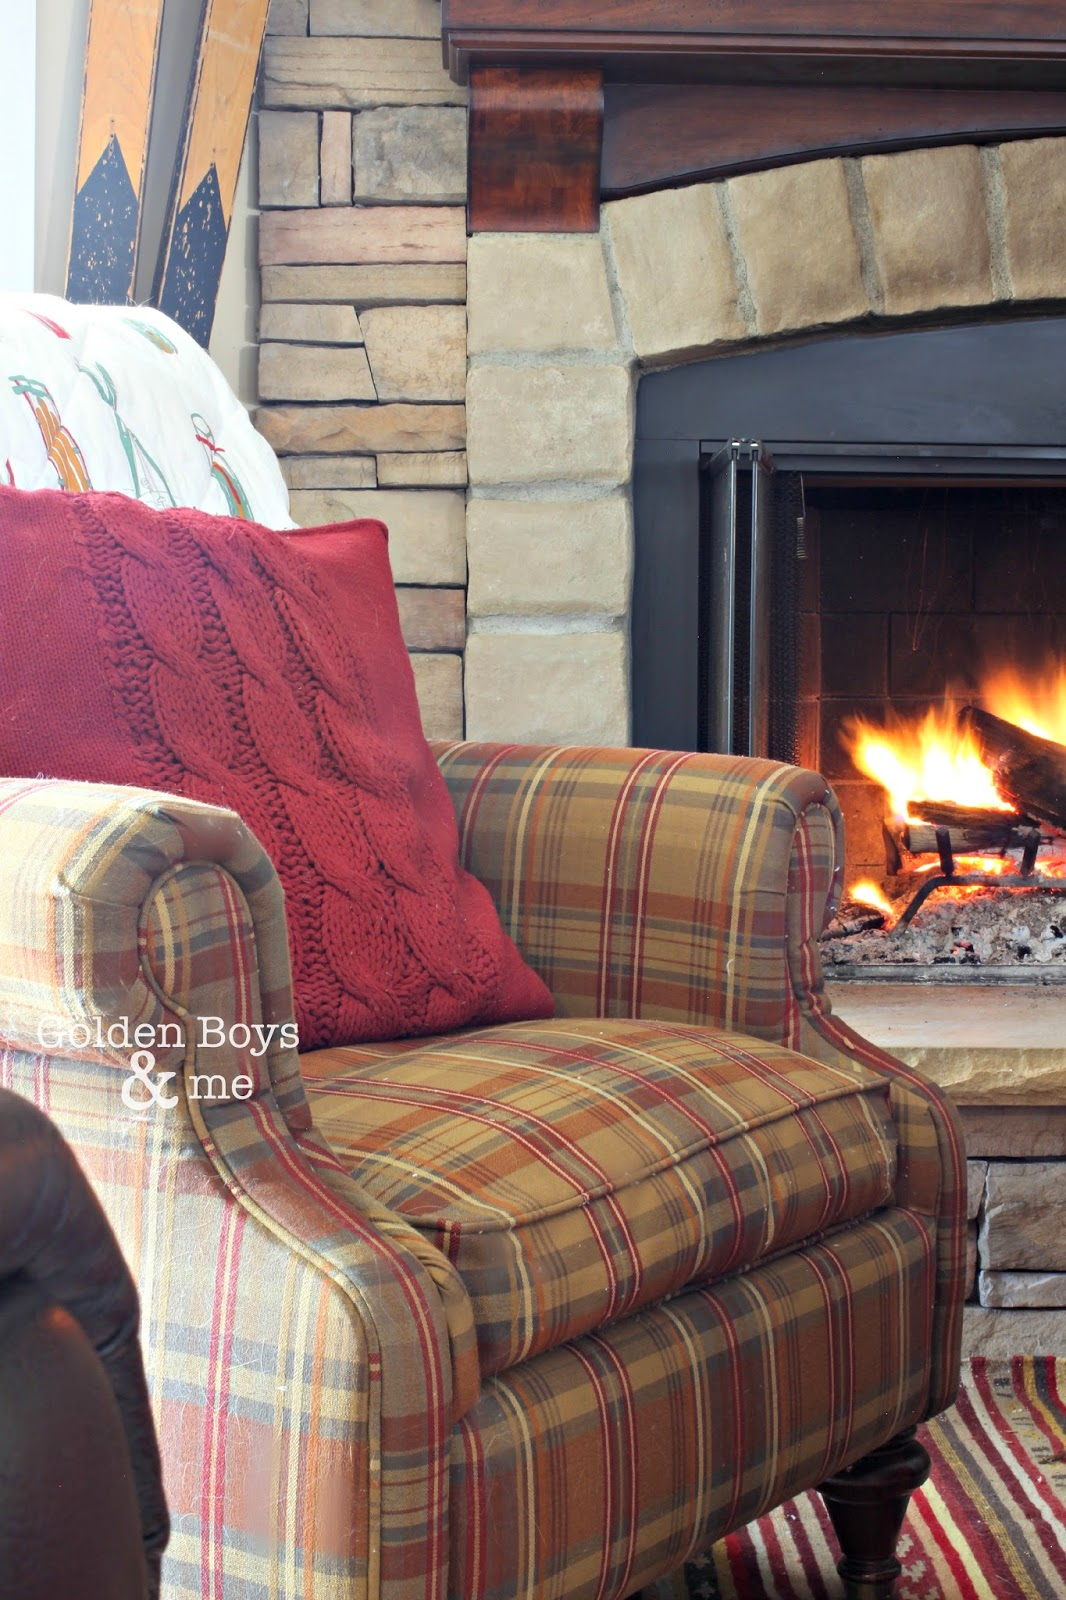 Plaid chair by stone fireplace-www.goldenboysandme.com